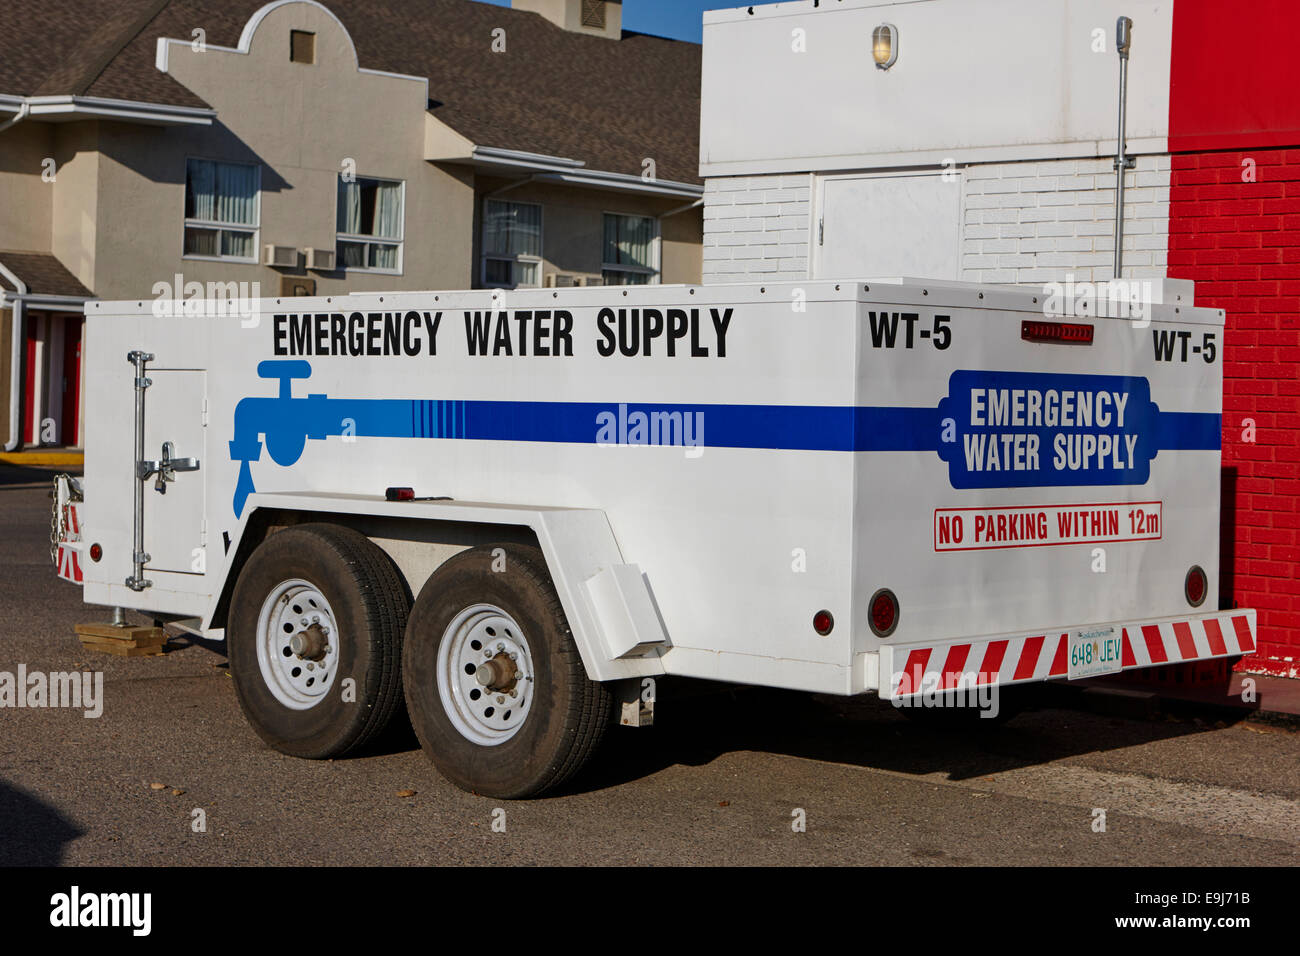 emergency water supply bowser trailer Saskatchewan Canada - Stock Image